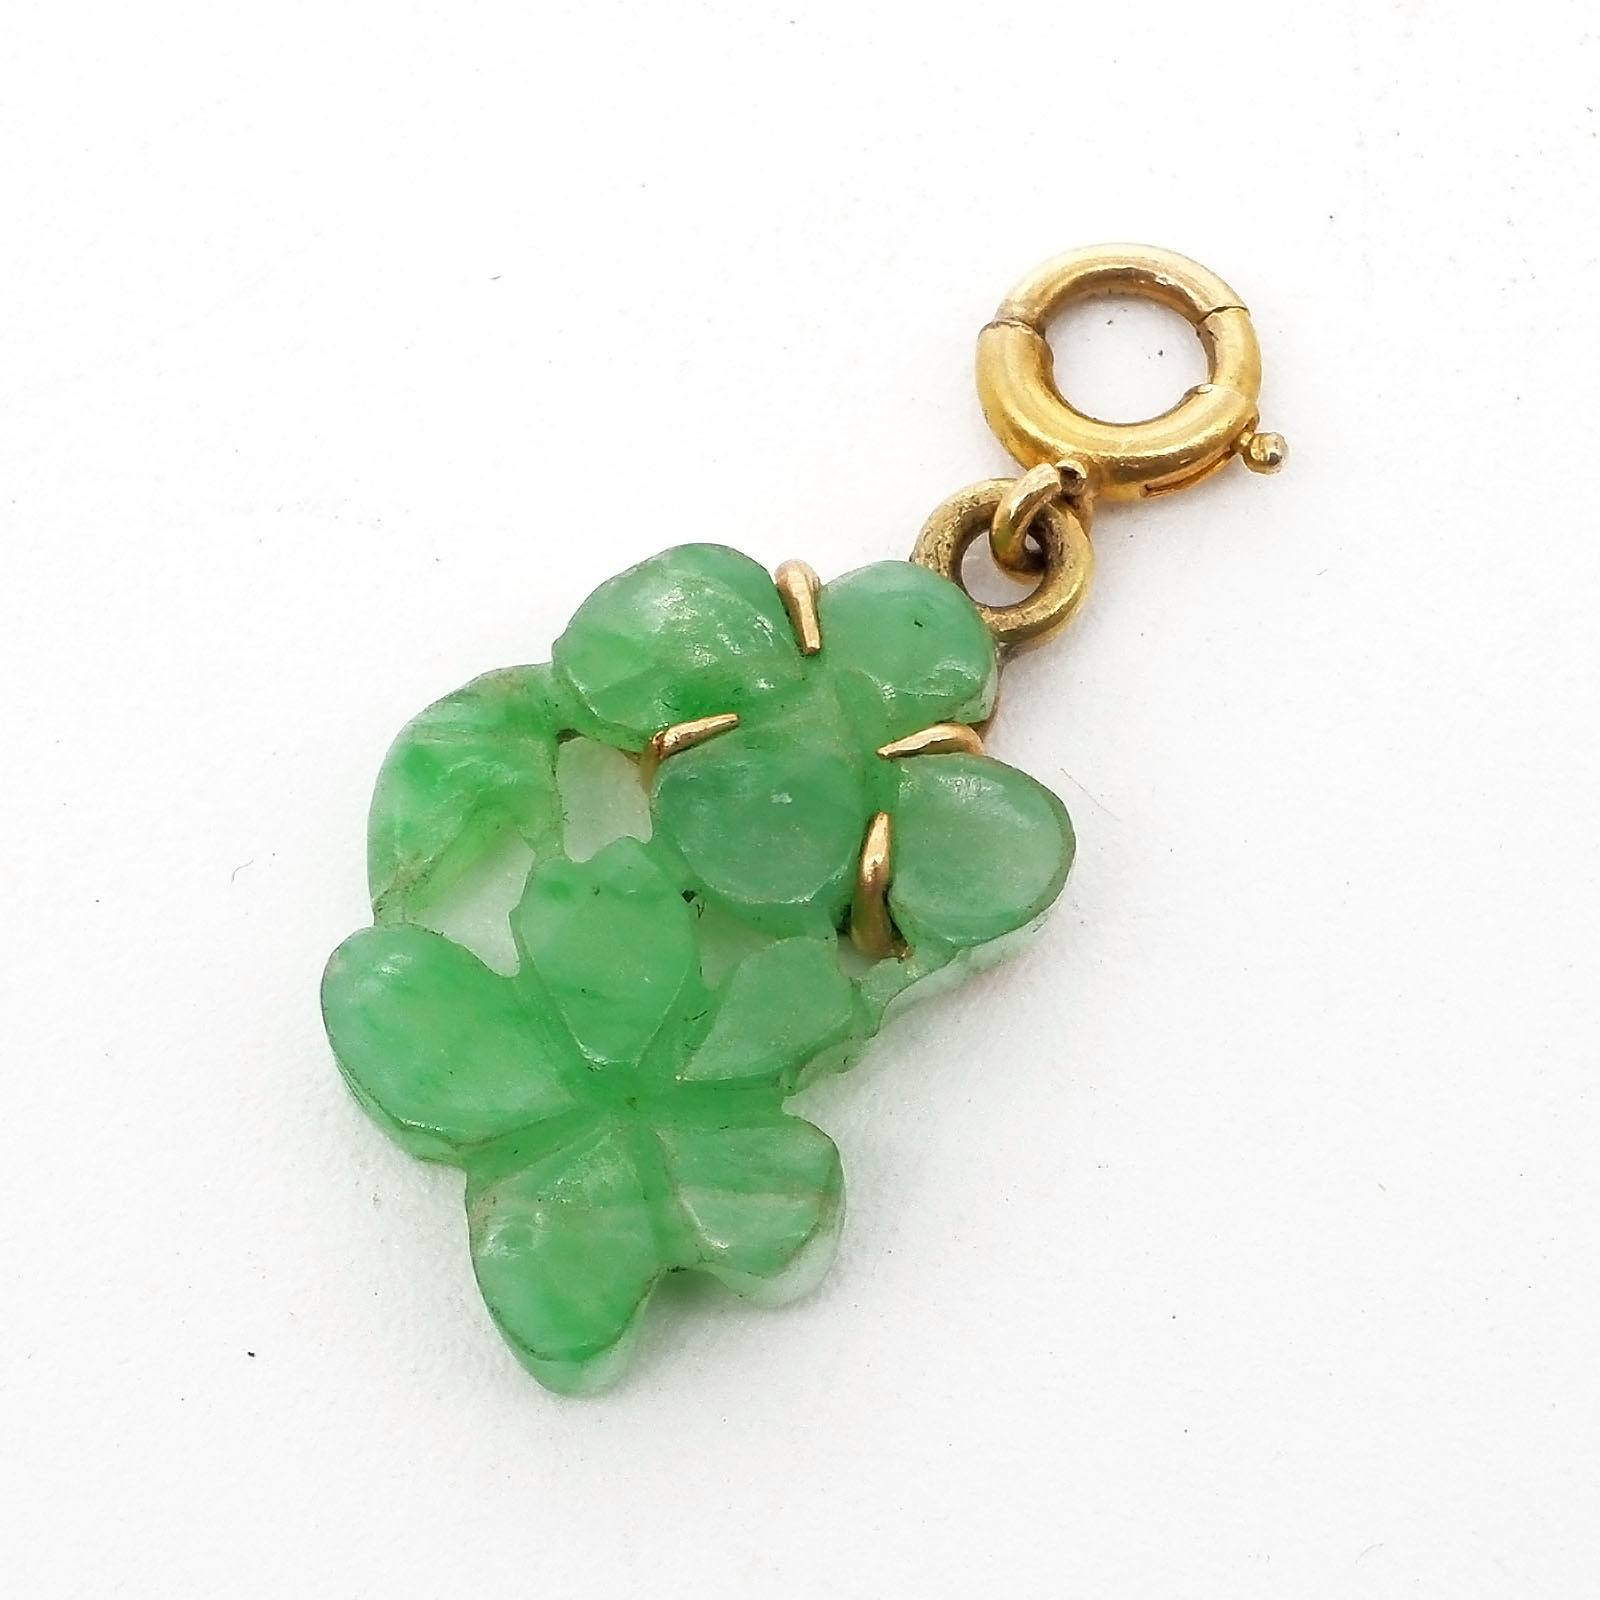 'Small Carved Jade Pendant in 14ct Yellow Gold Four Claw Setting'